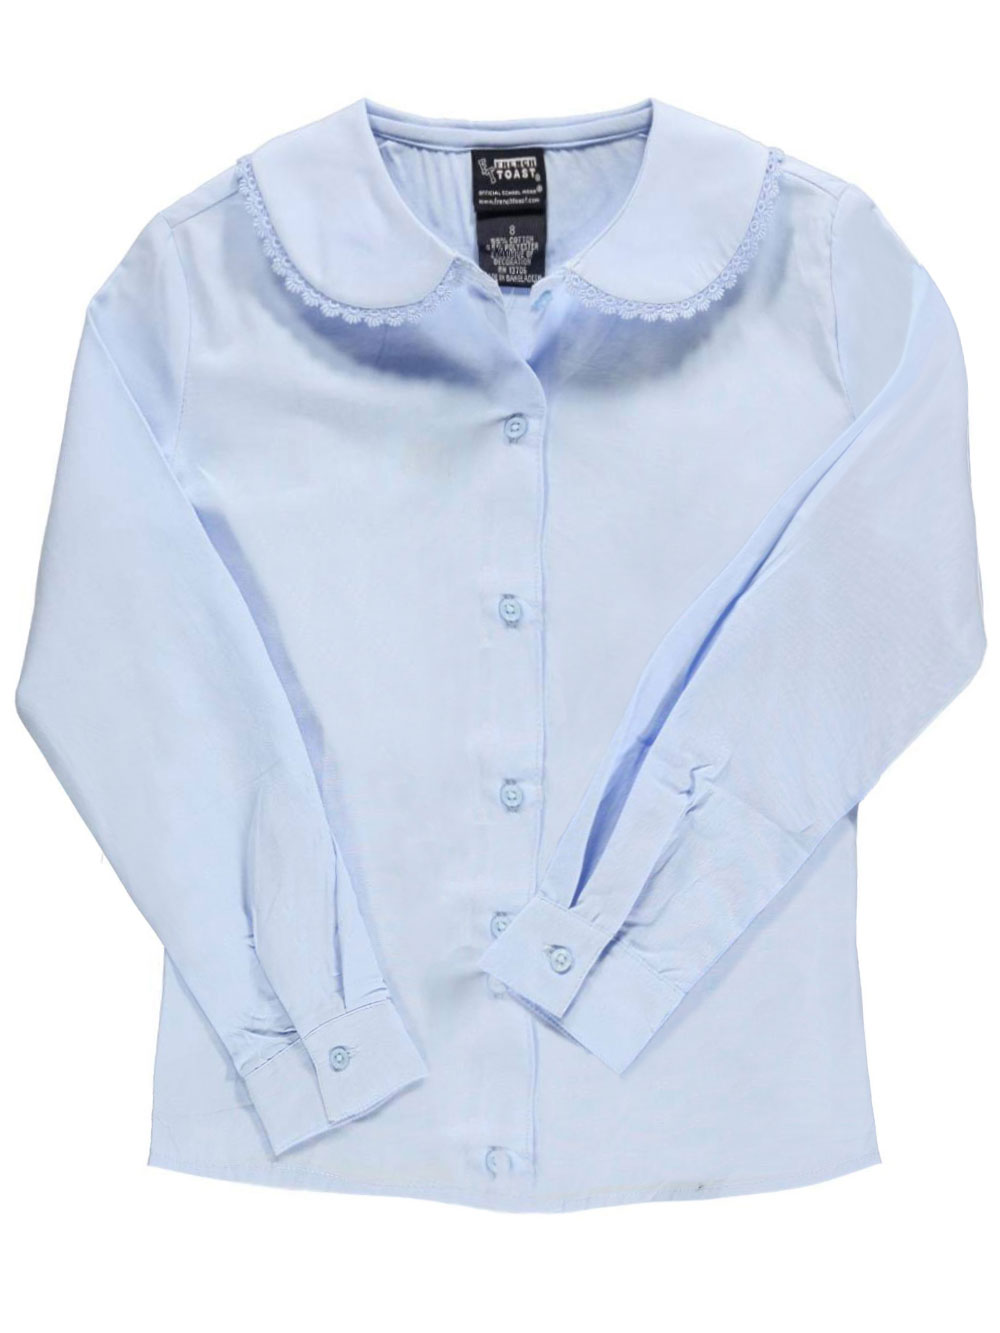 French Toast School Uniform Big Girls' L/S Blouse with Lace Edging (Sizes 7 - 16) - blue, 12